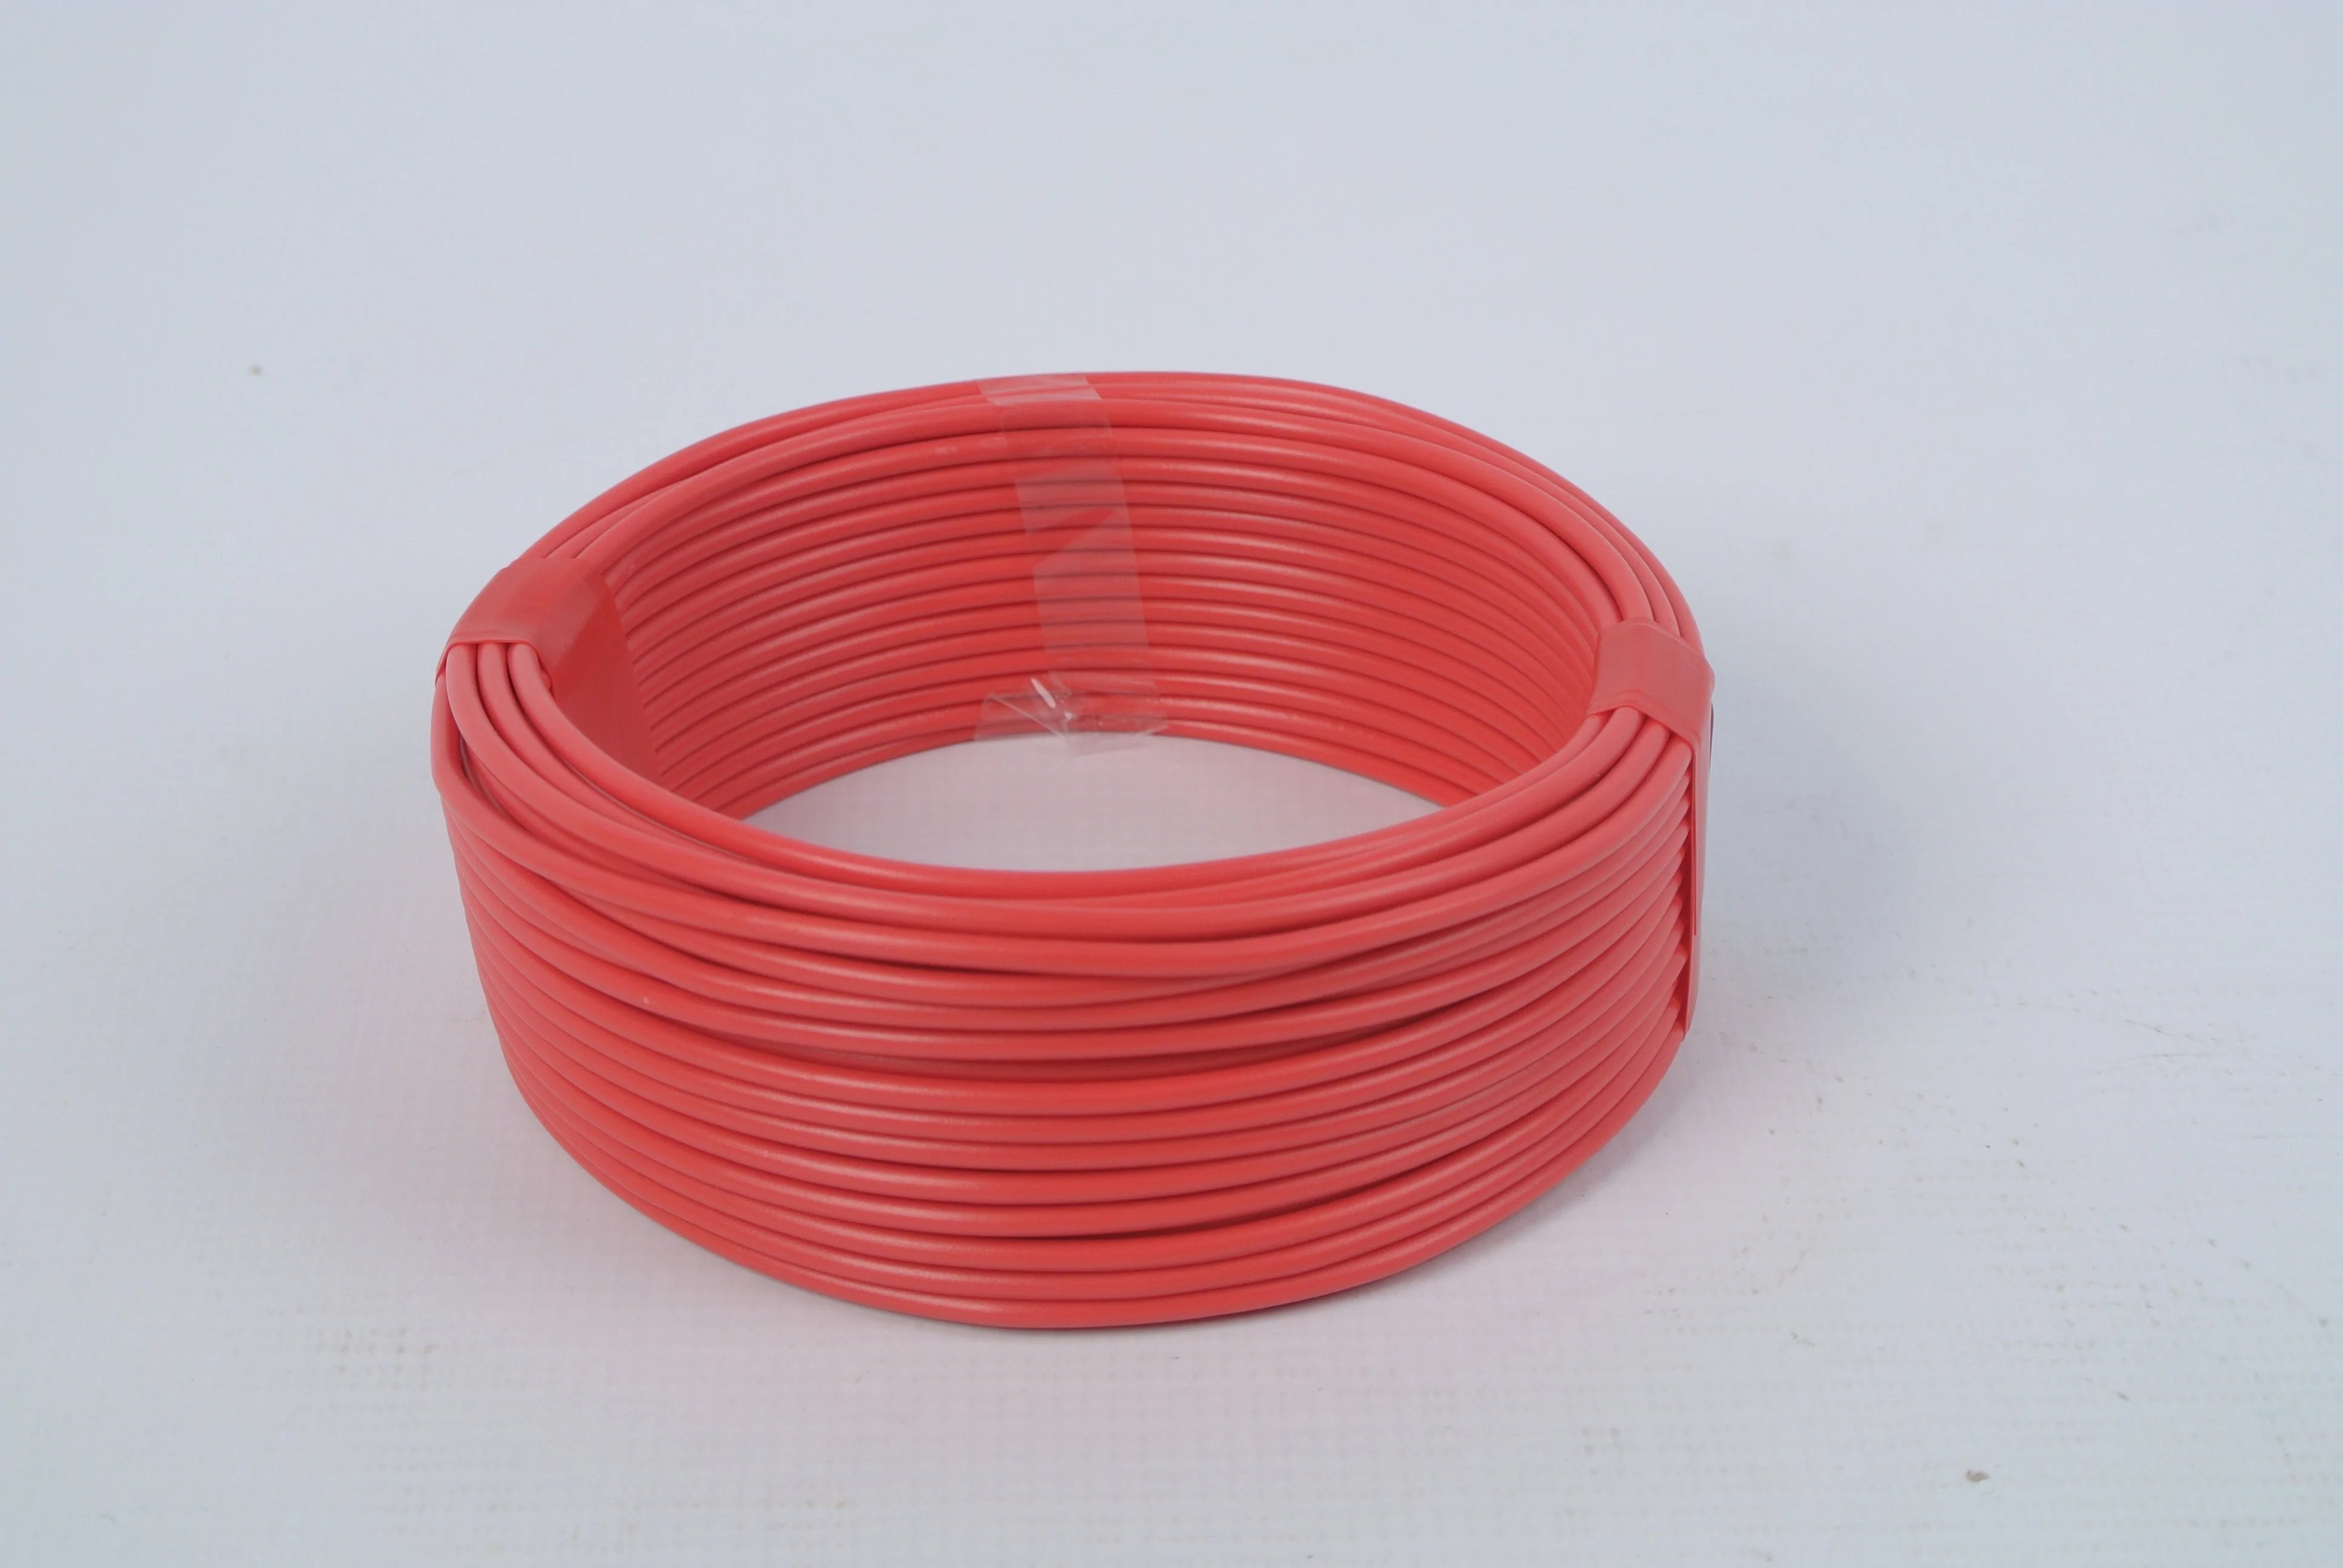 hight resolution of house wire house wire house wire house wire